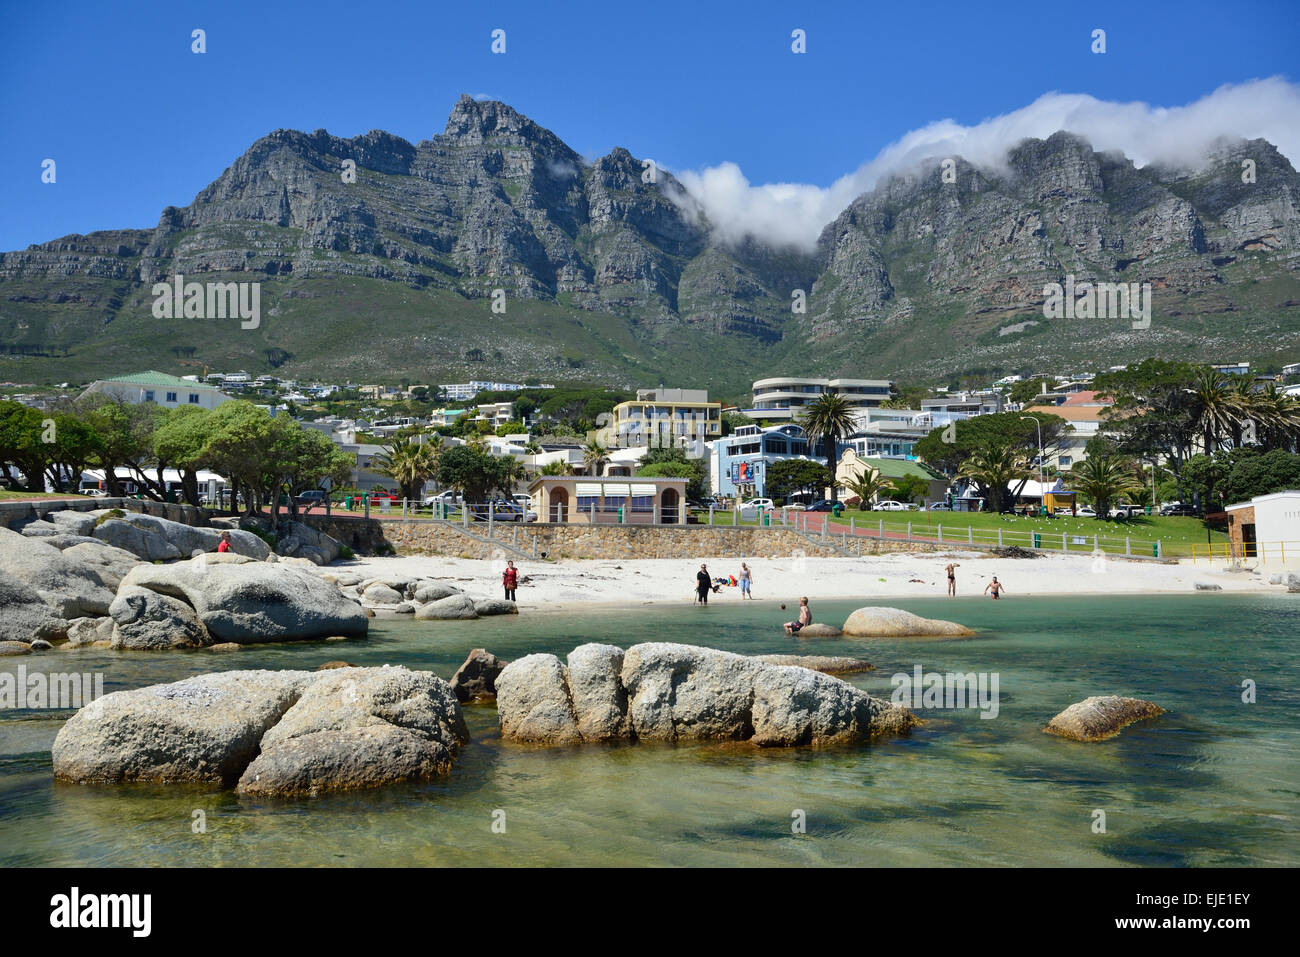 Low angle view of the side of Table Mountain from Camps Bay beach, Cape Town, South Africa Stock Photo